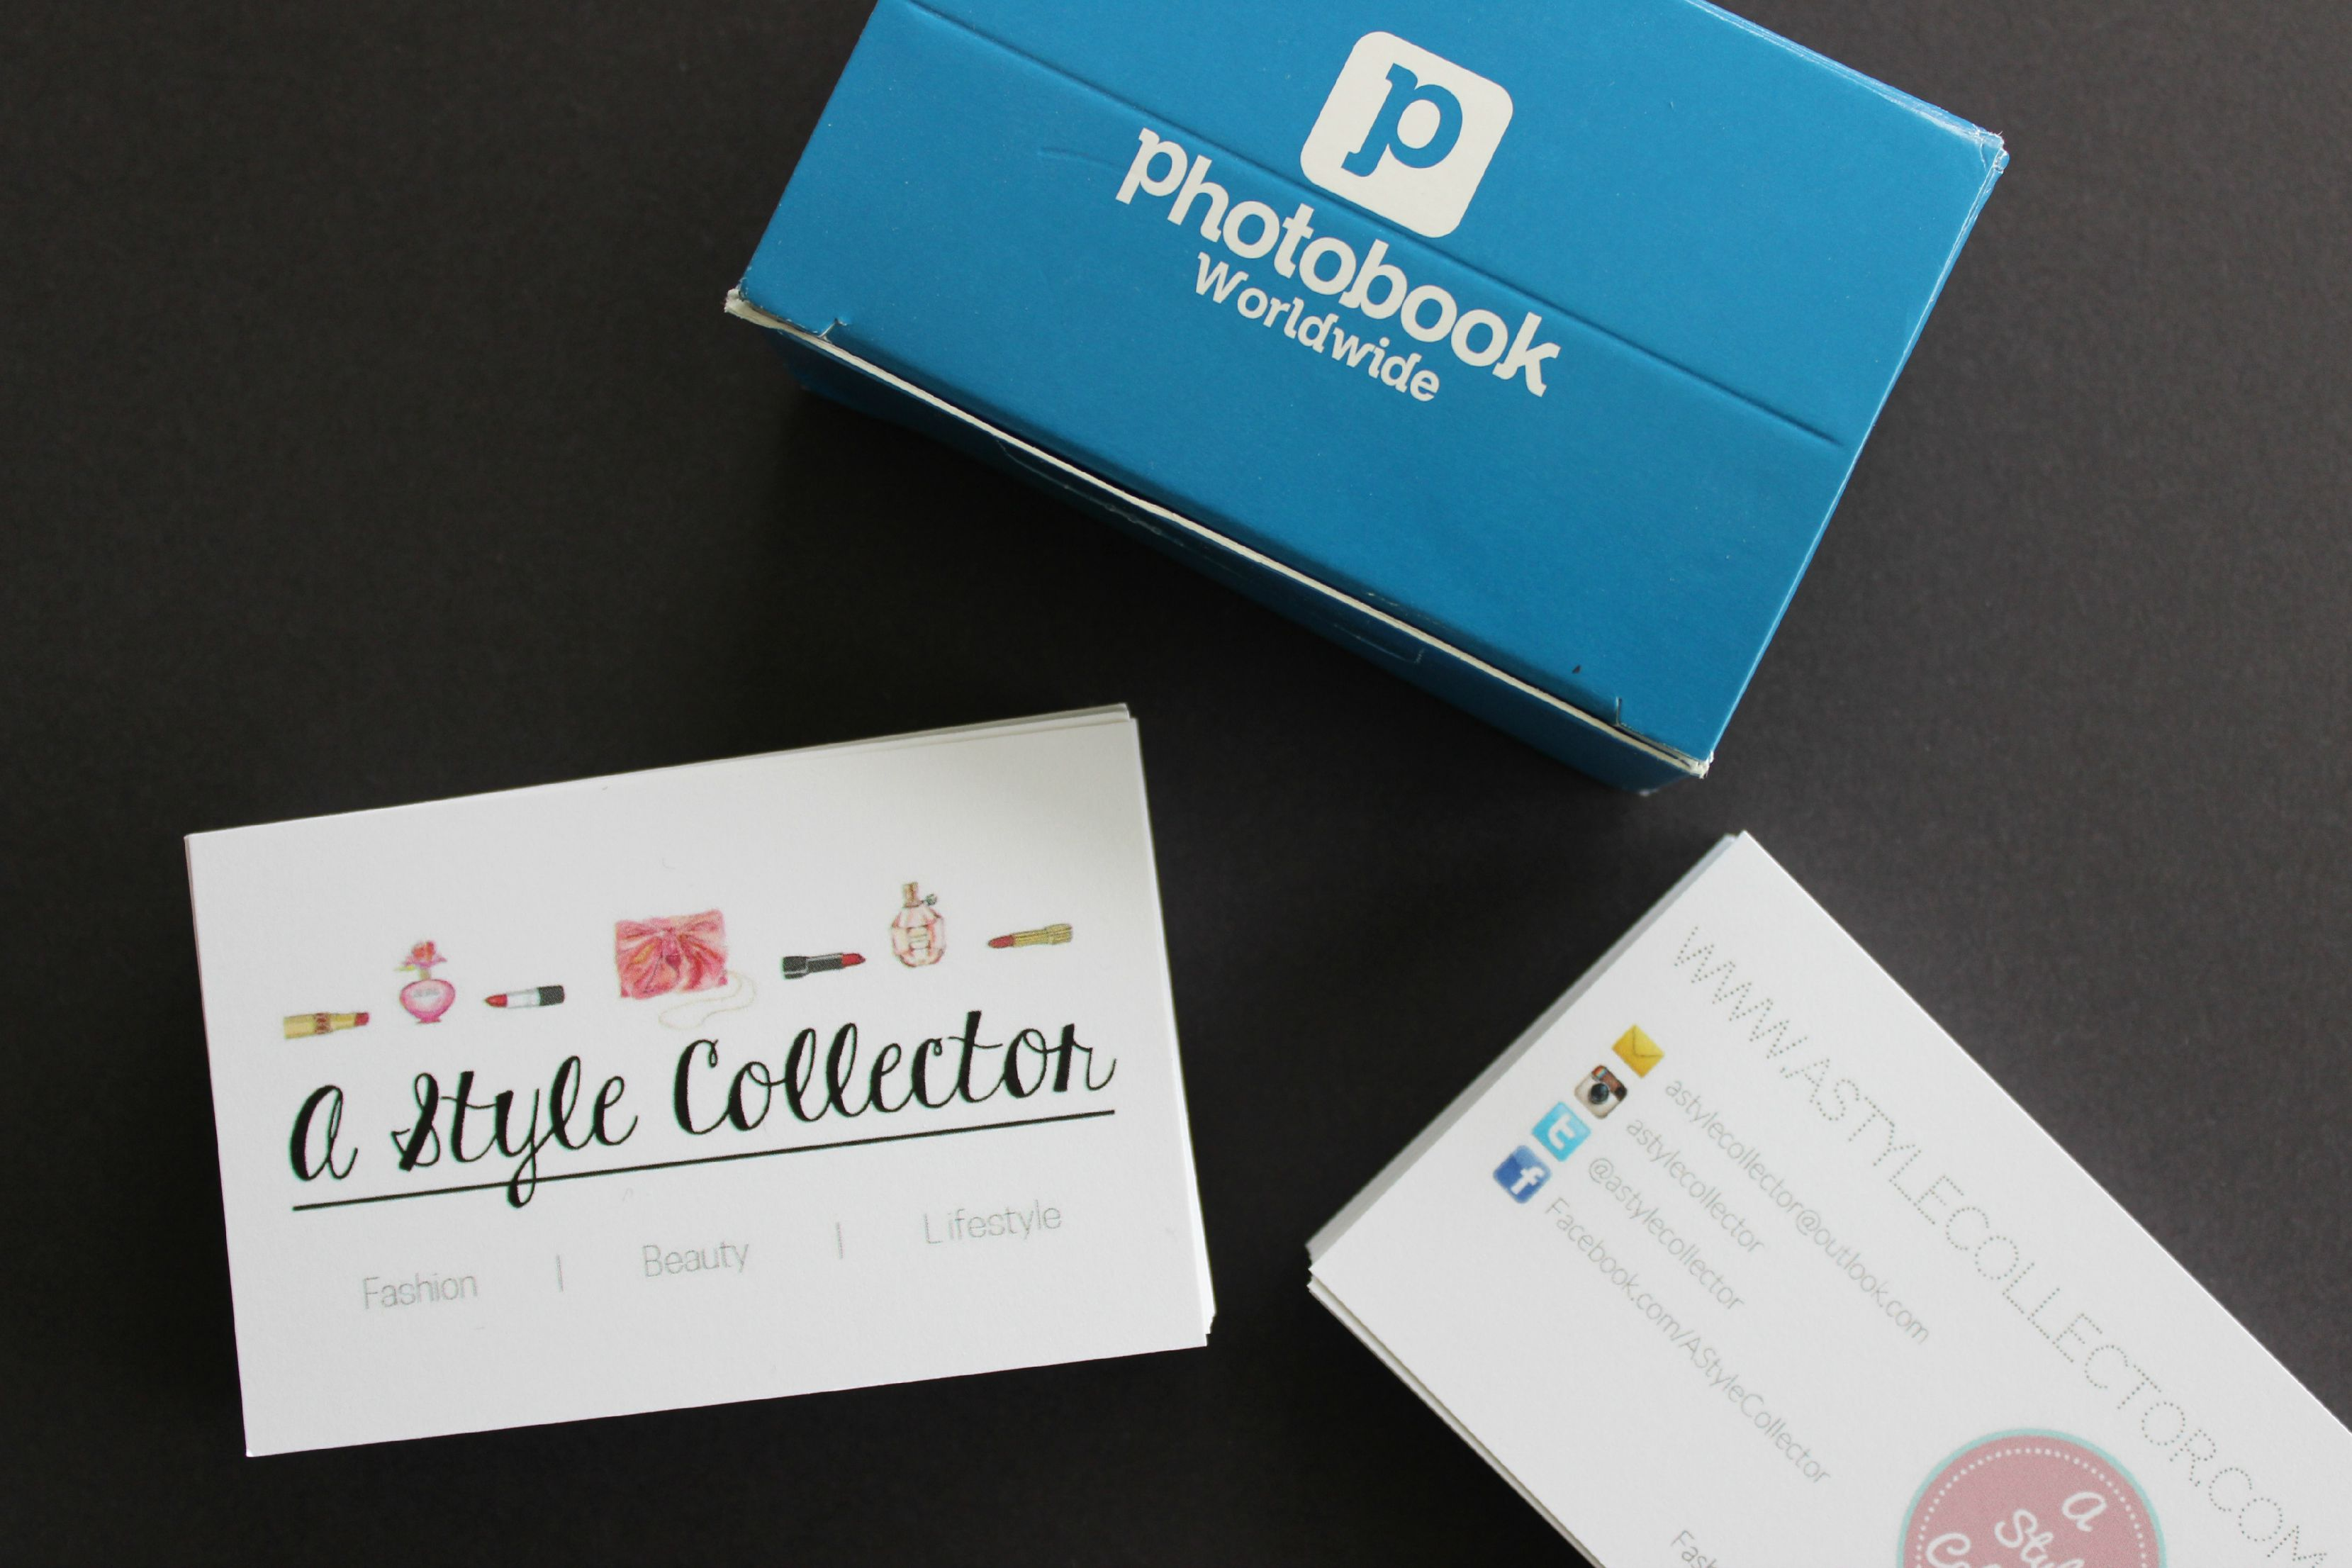 Blog Business Cards – A Style Collector